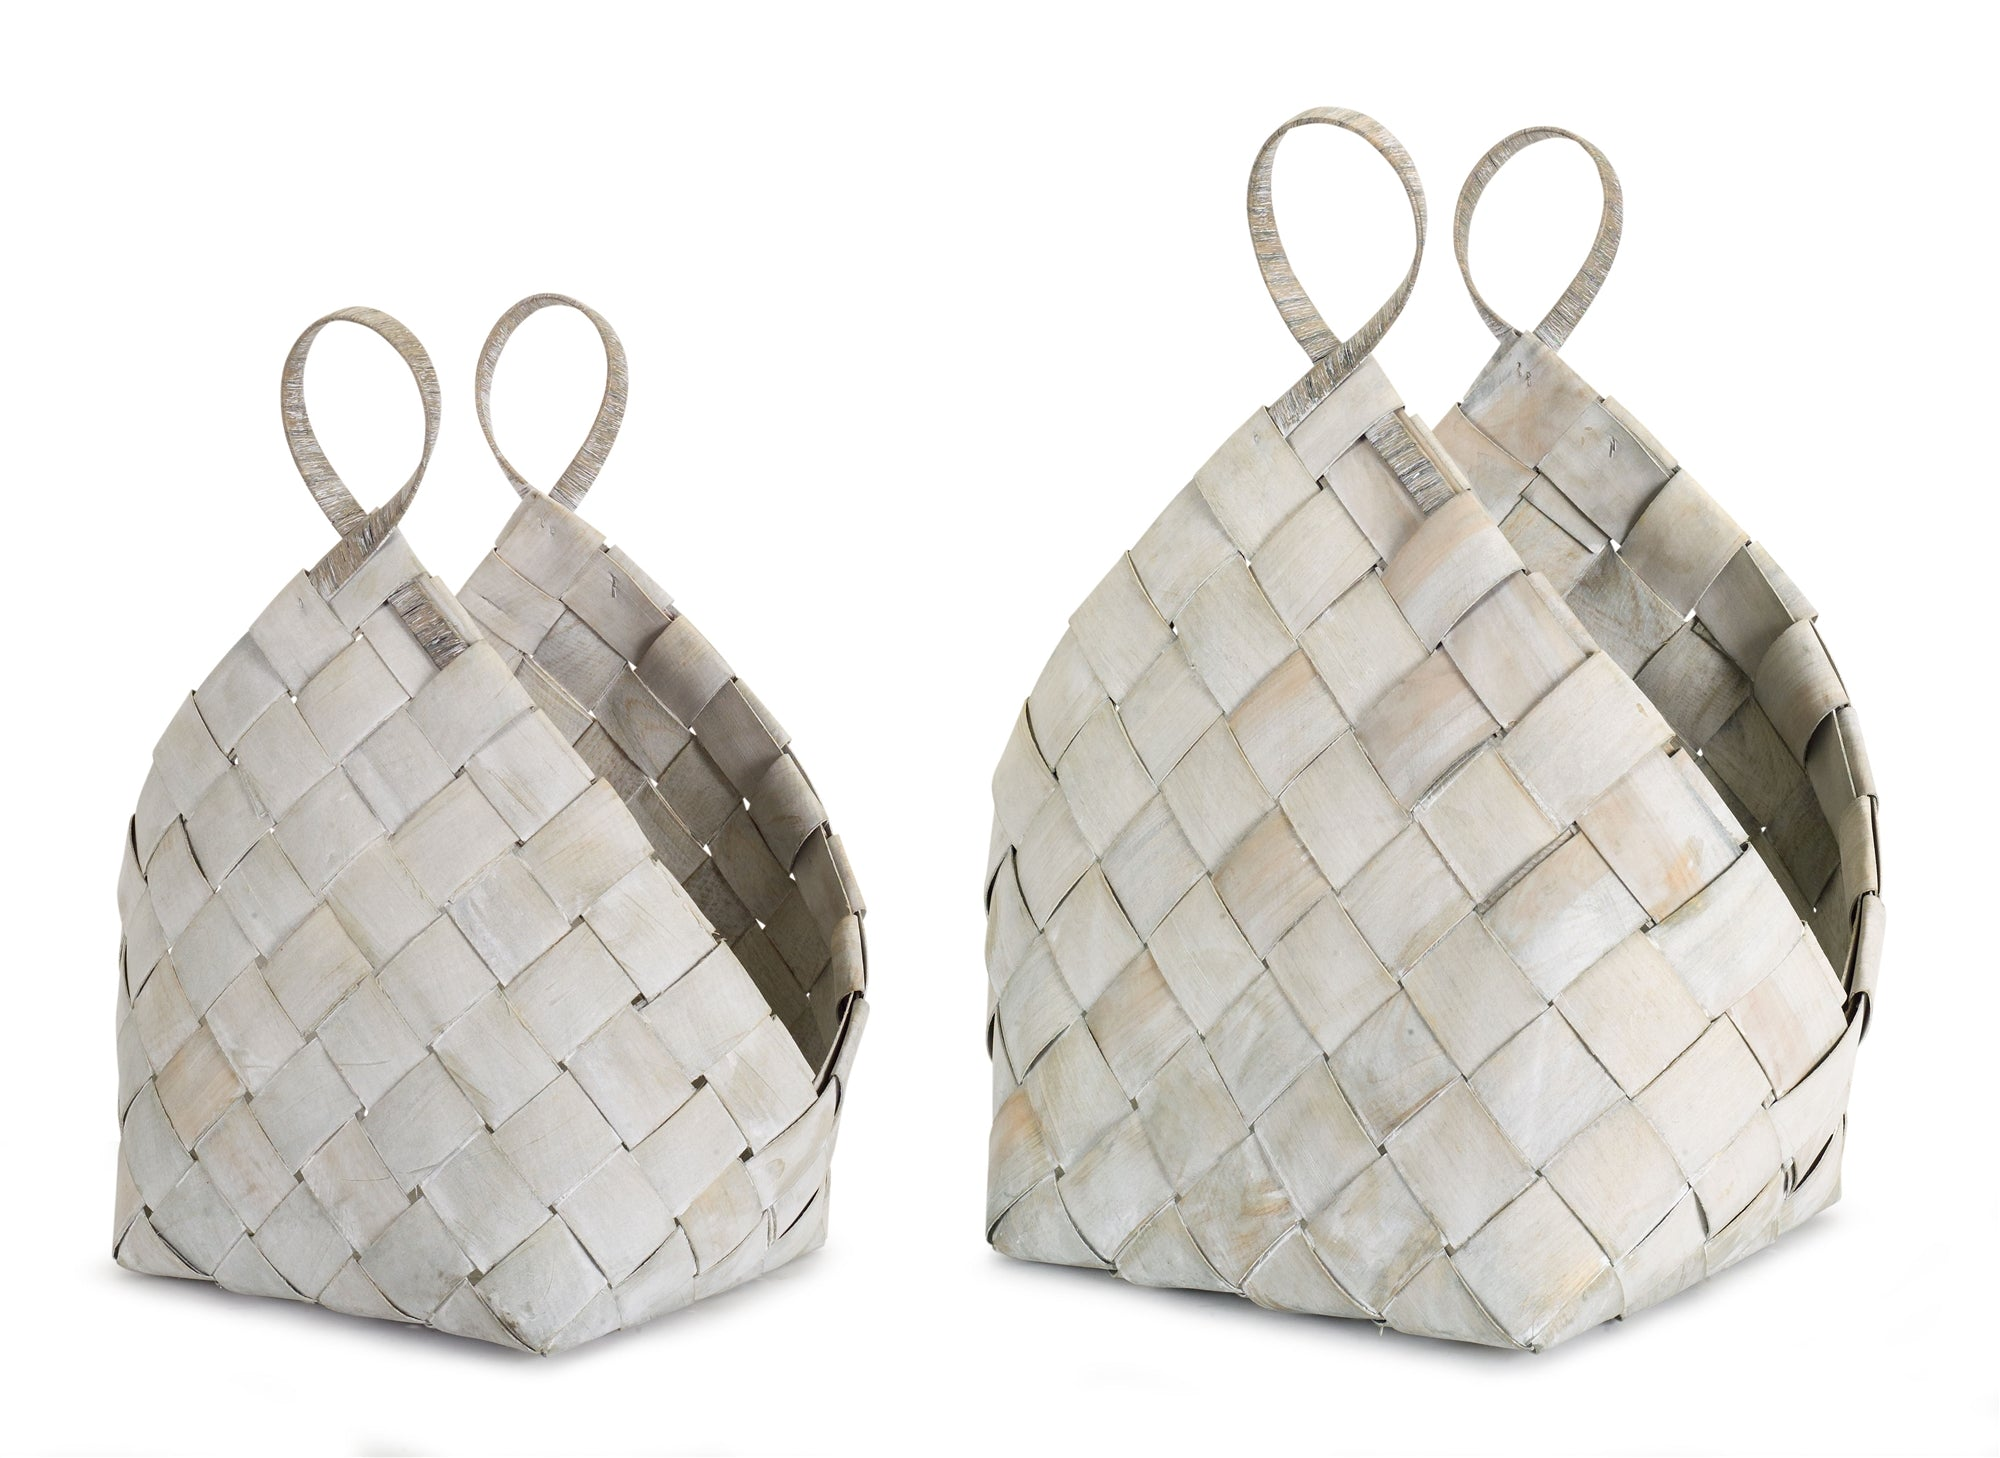 The Carmel Woven Tote (Set of 2)